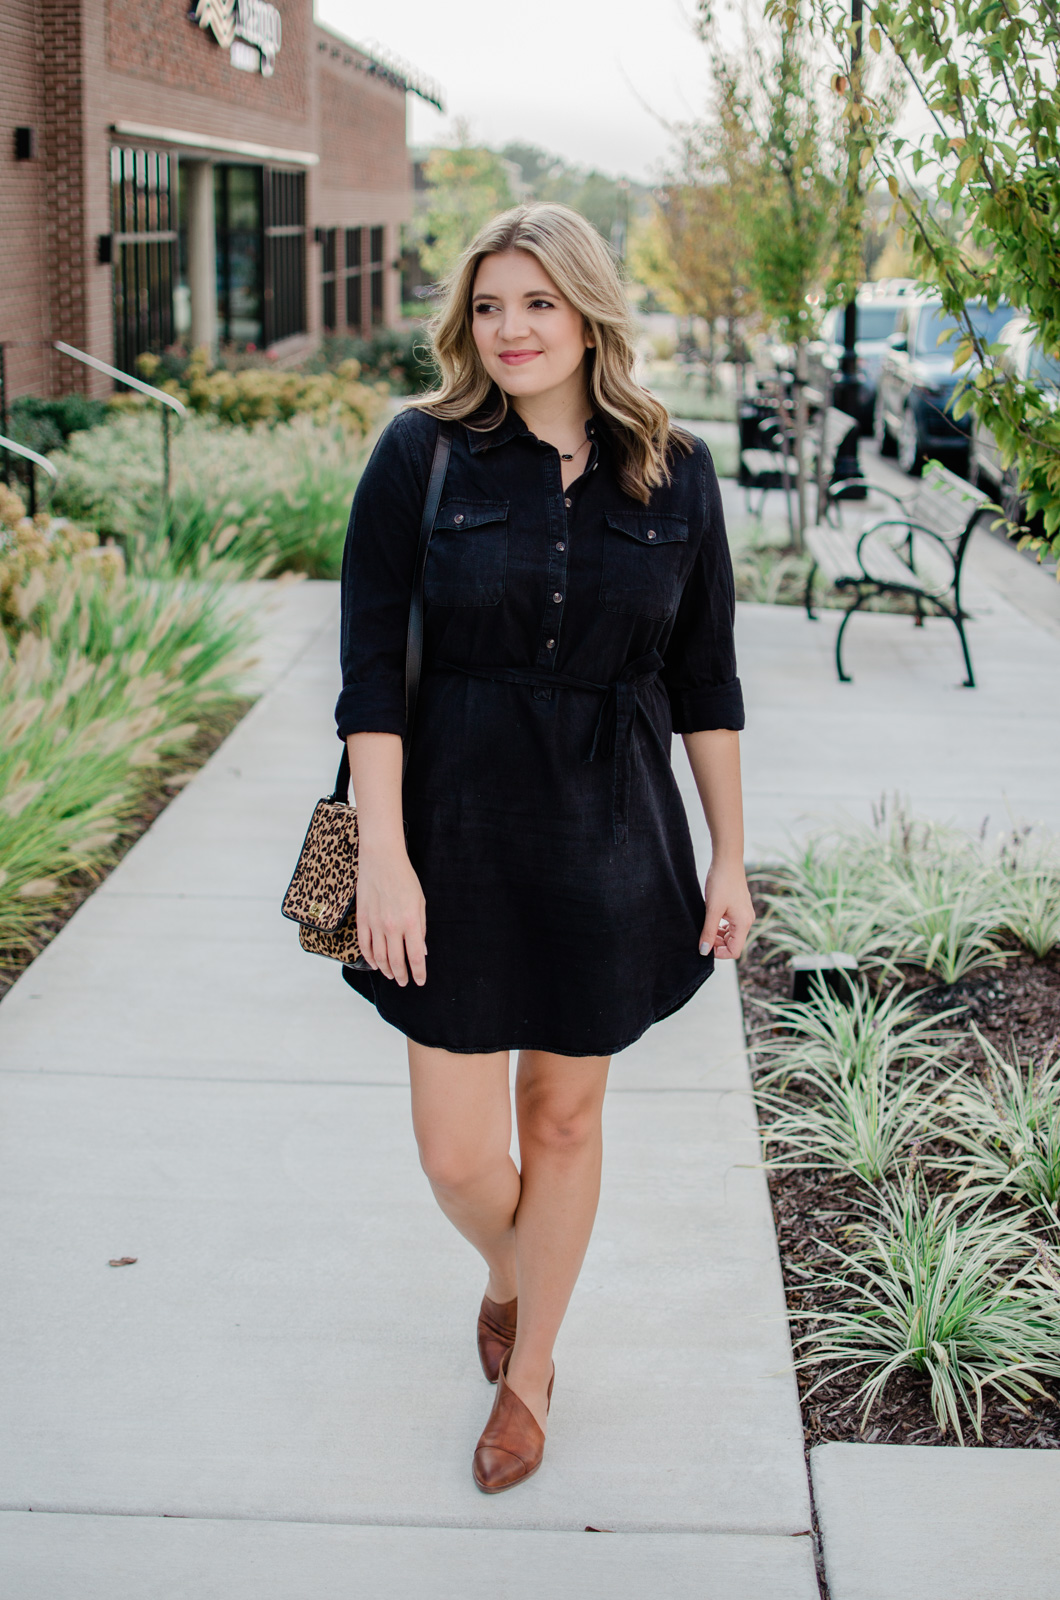 black denim shirt dress outfit - fall shirt dress outfit | bylaurenm.com